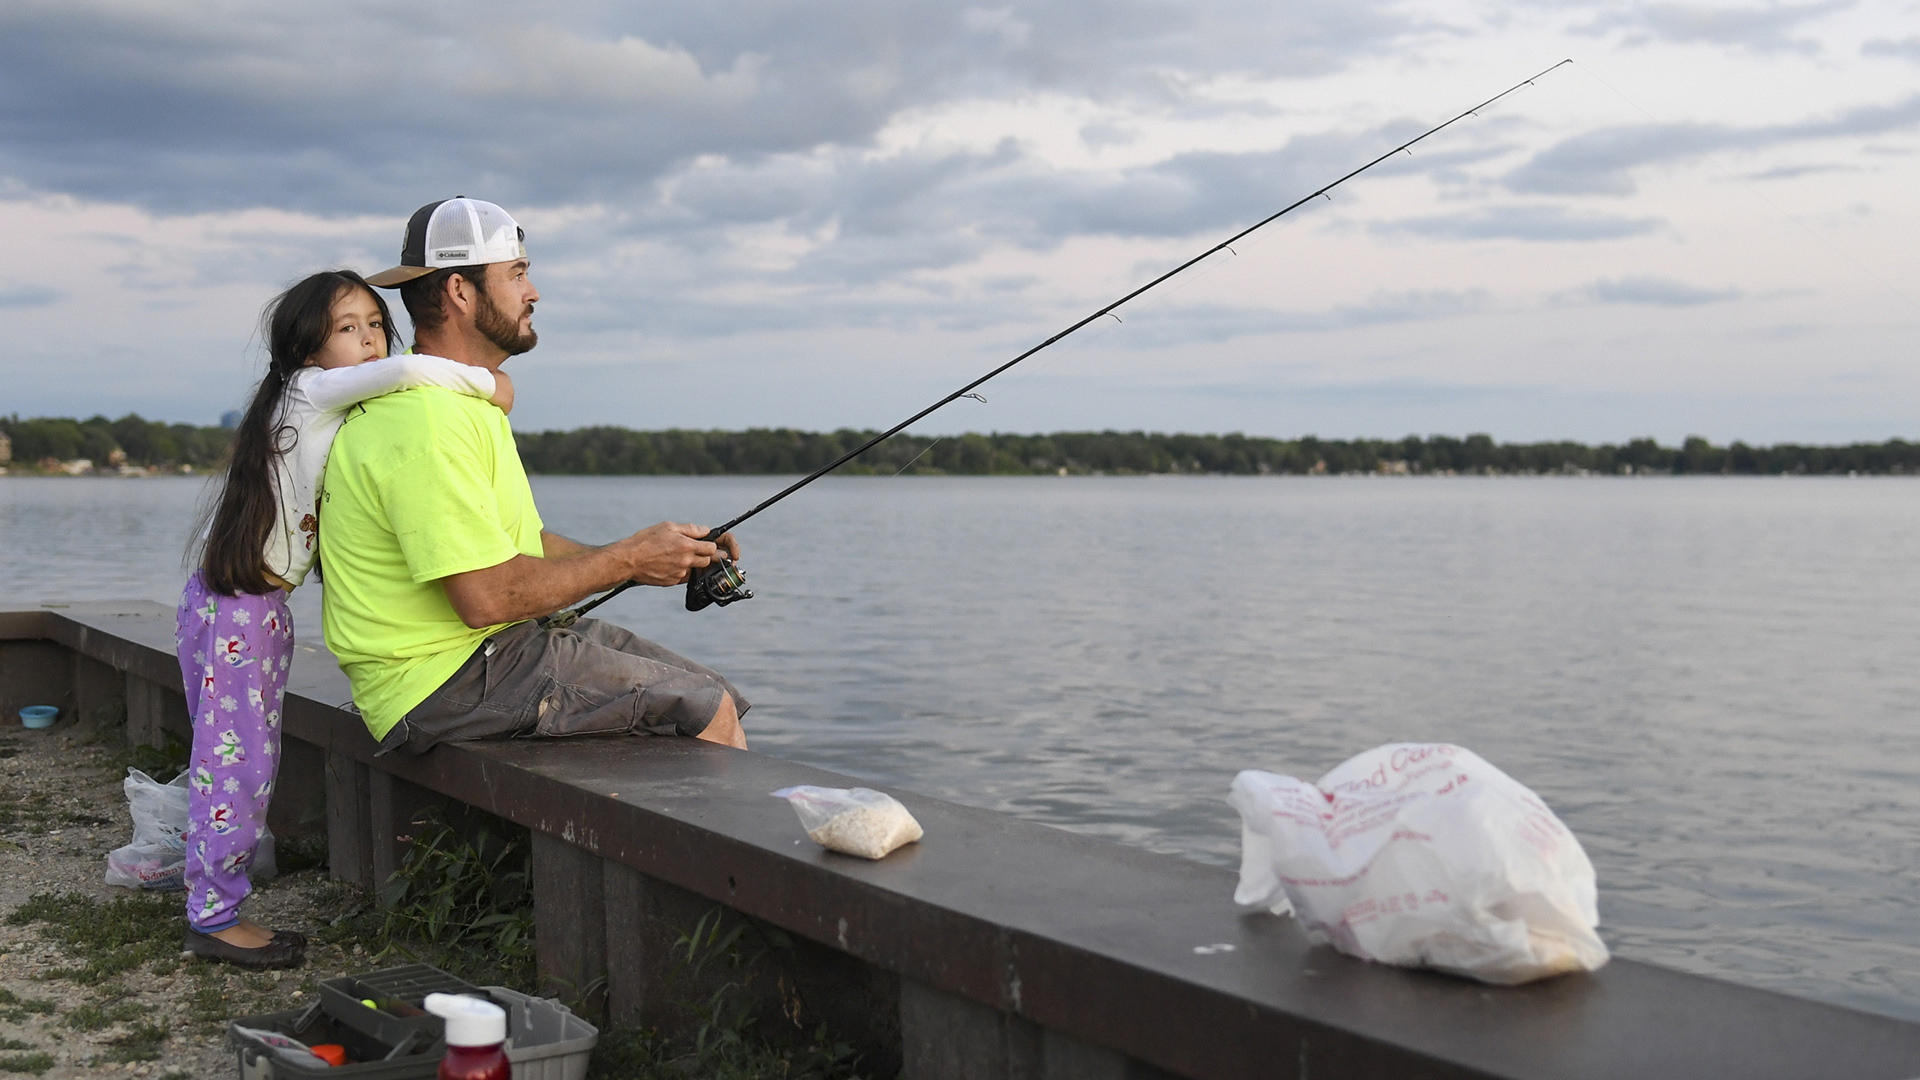 Daniel Estrada sits fishing on a dock with Isabella Estrada hugging him, with a lakeshore in the background.